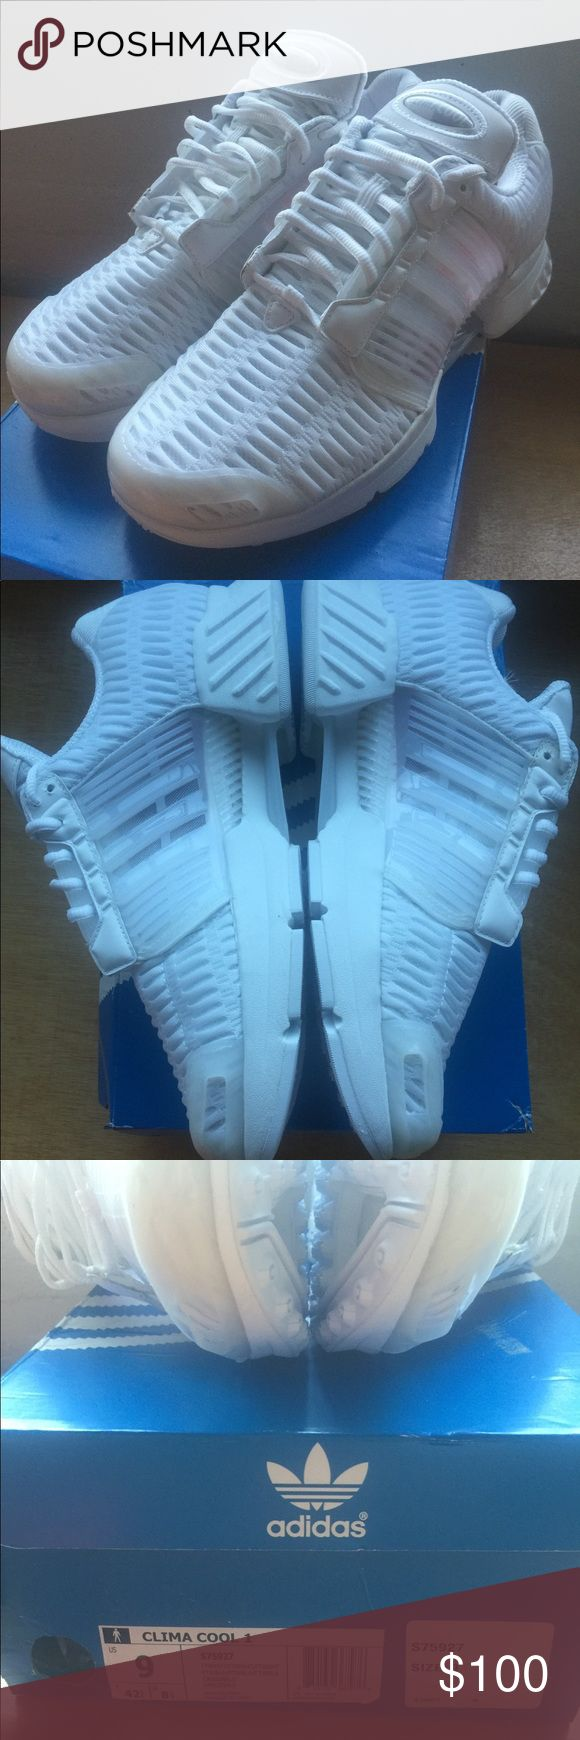 Adidas Climacool 1 Triple White Brand new in box Adidas Climacool 1 in size 9. Never worn, have been sitting in box since day 1. Box has some wear from the online store I ordered from not double boxing. Otherwise shoes are perfect. adidas Shoes Sneakers